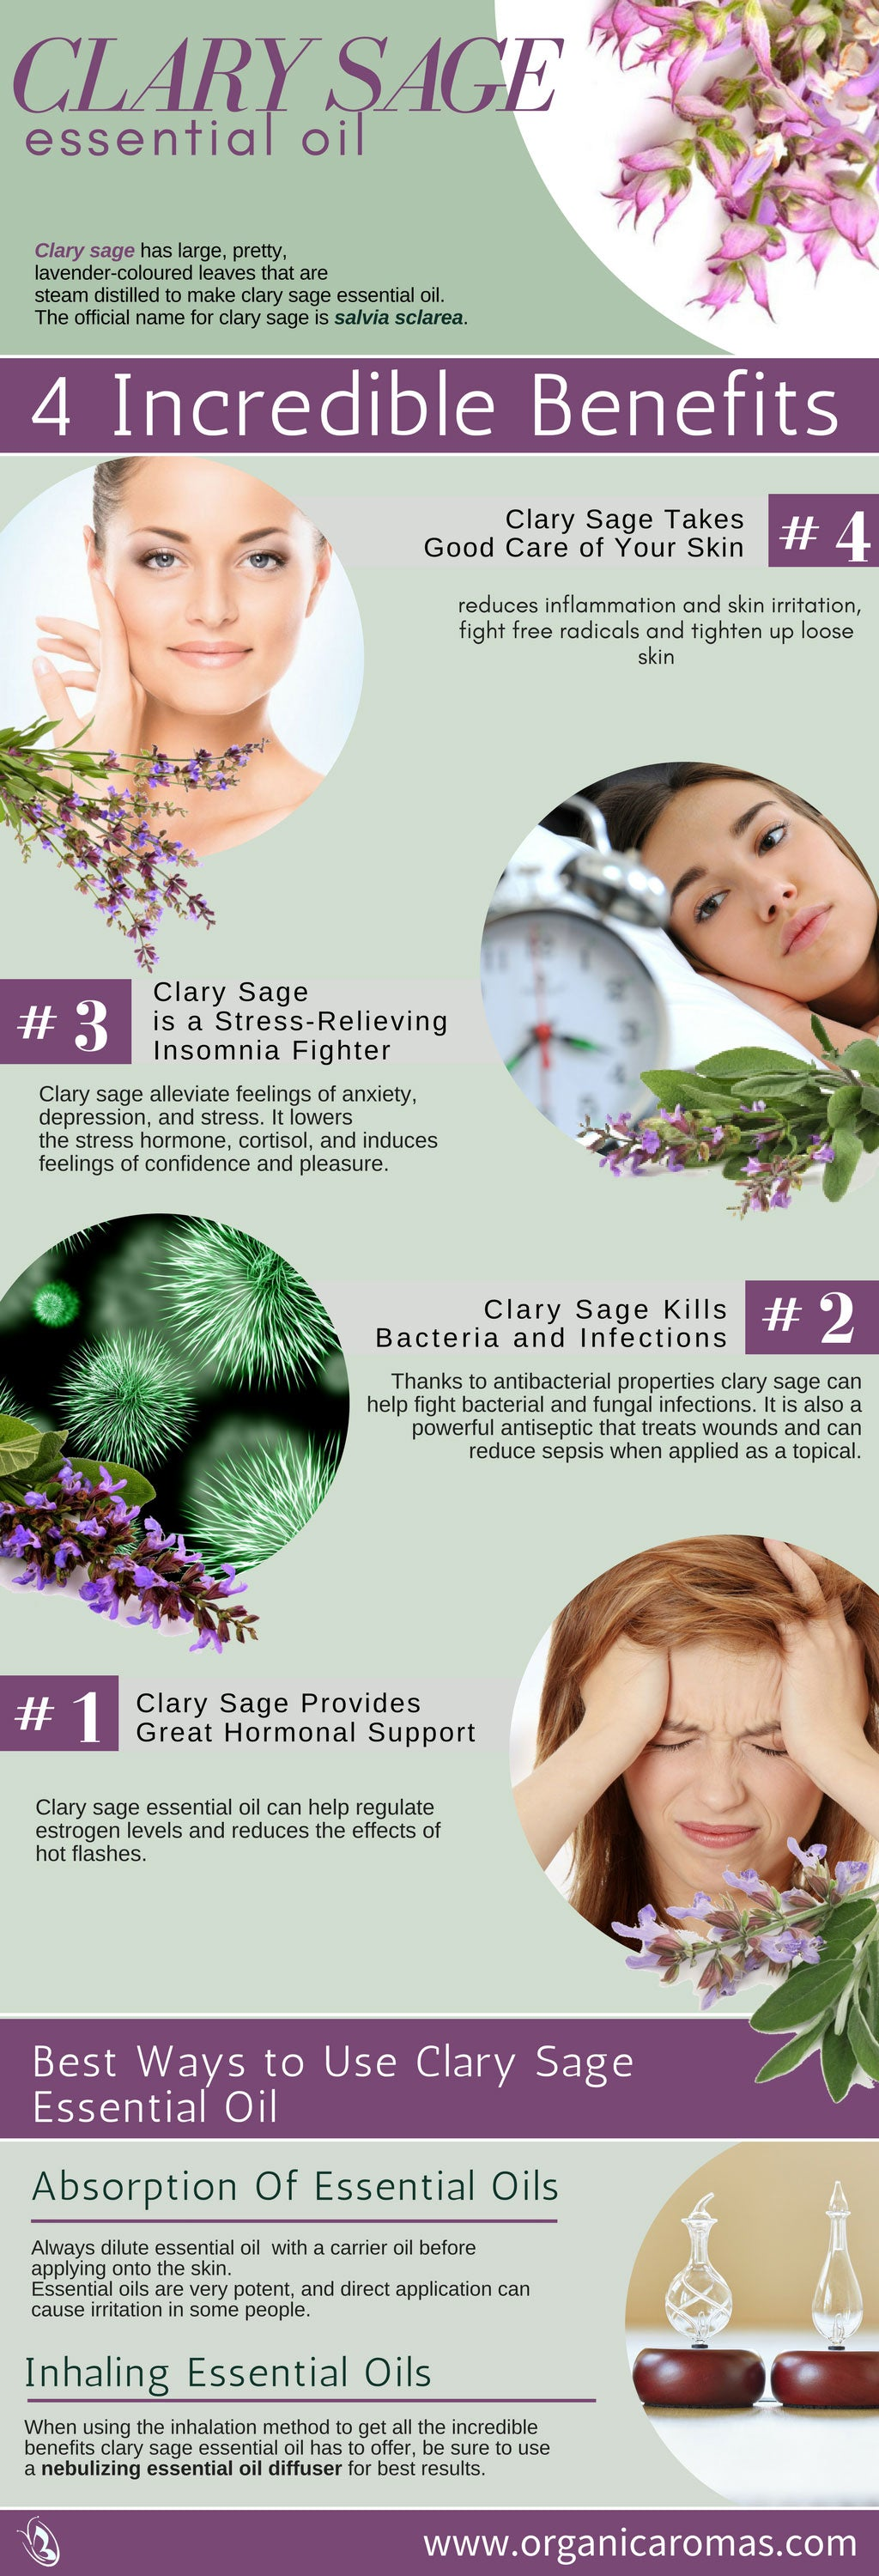 4 Incredible Benefits Clary Sage Essential Oil Organic Aromas